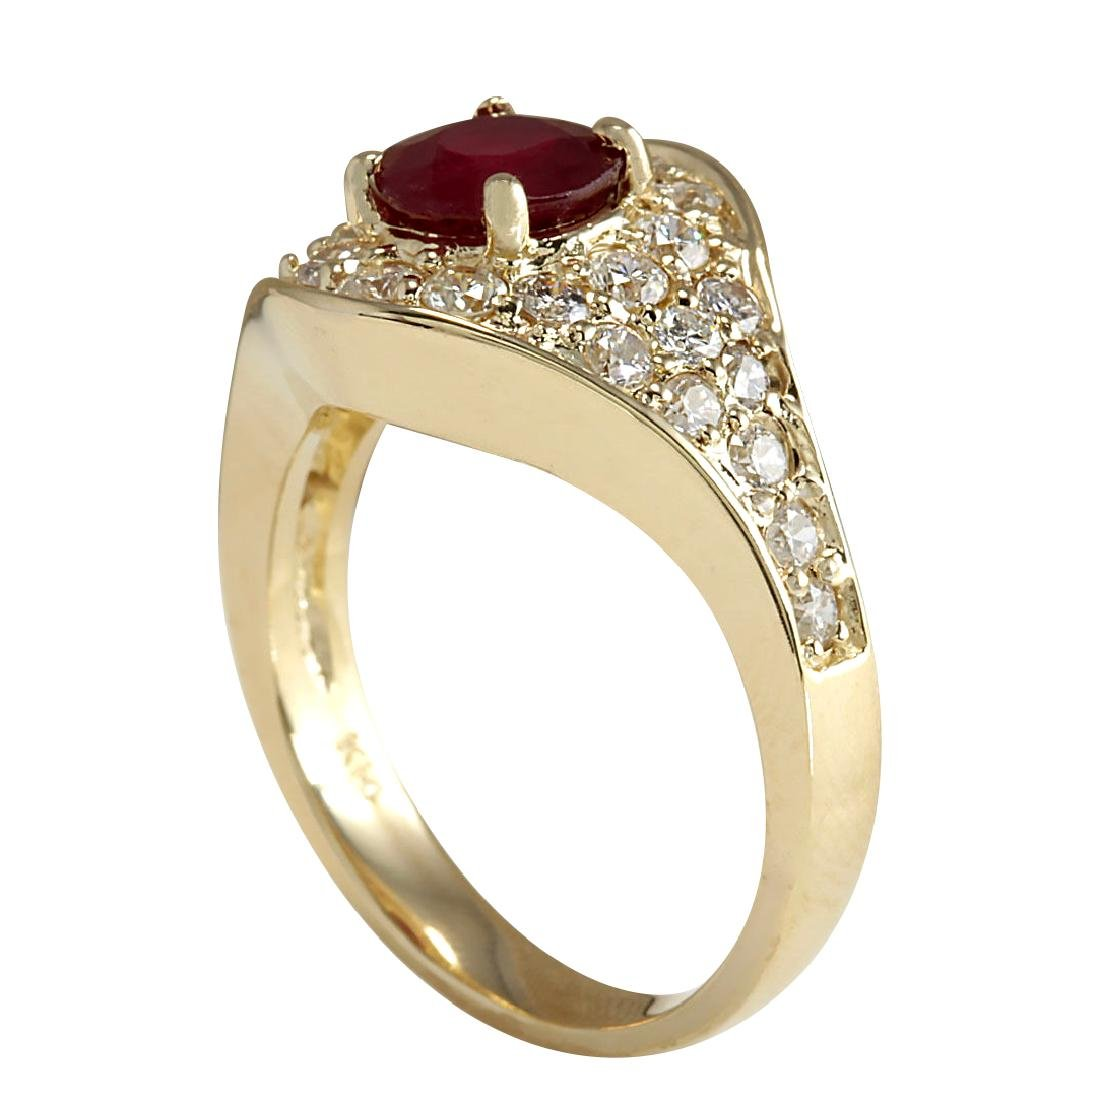 2.32Ct Natural Ruby And Diamond Ring In18K Yellow Gold - 3